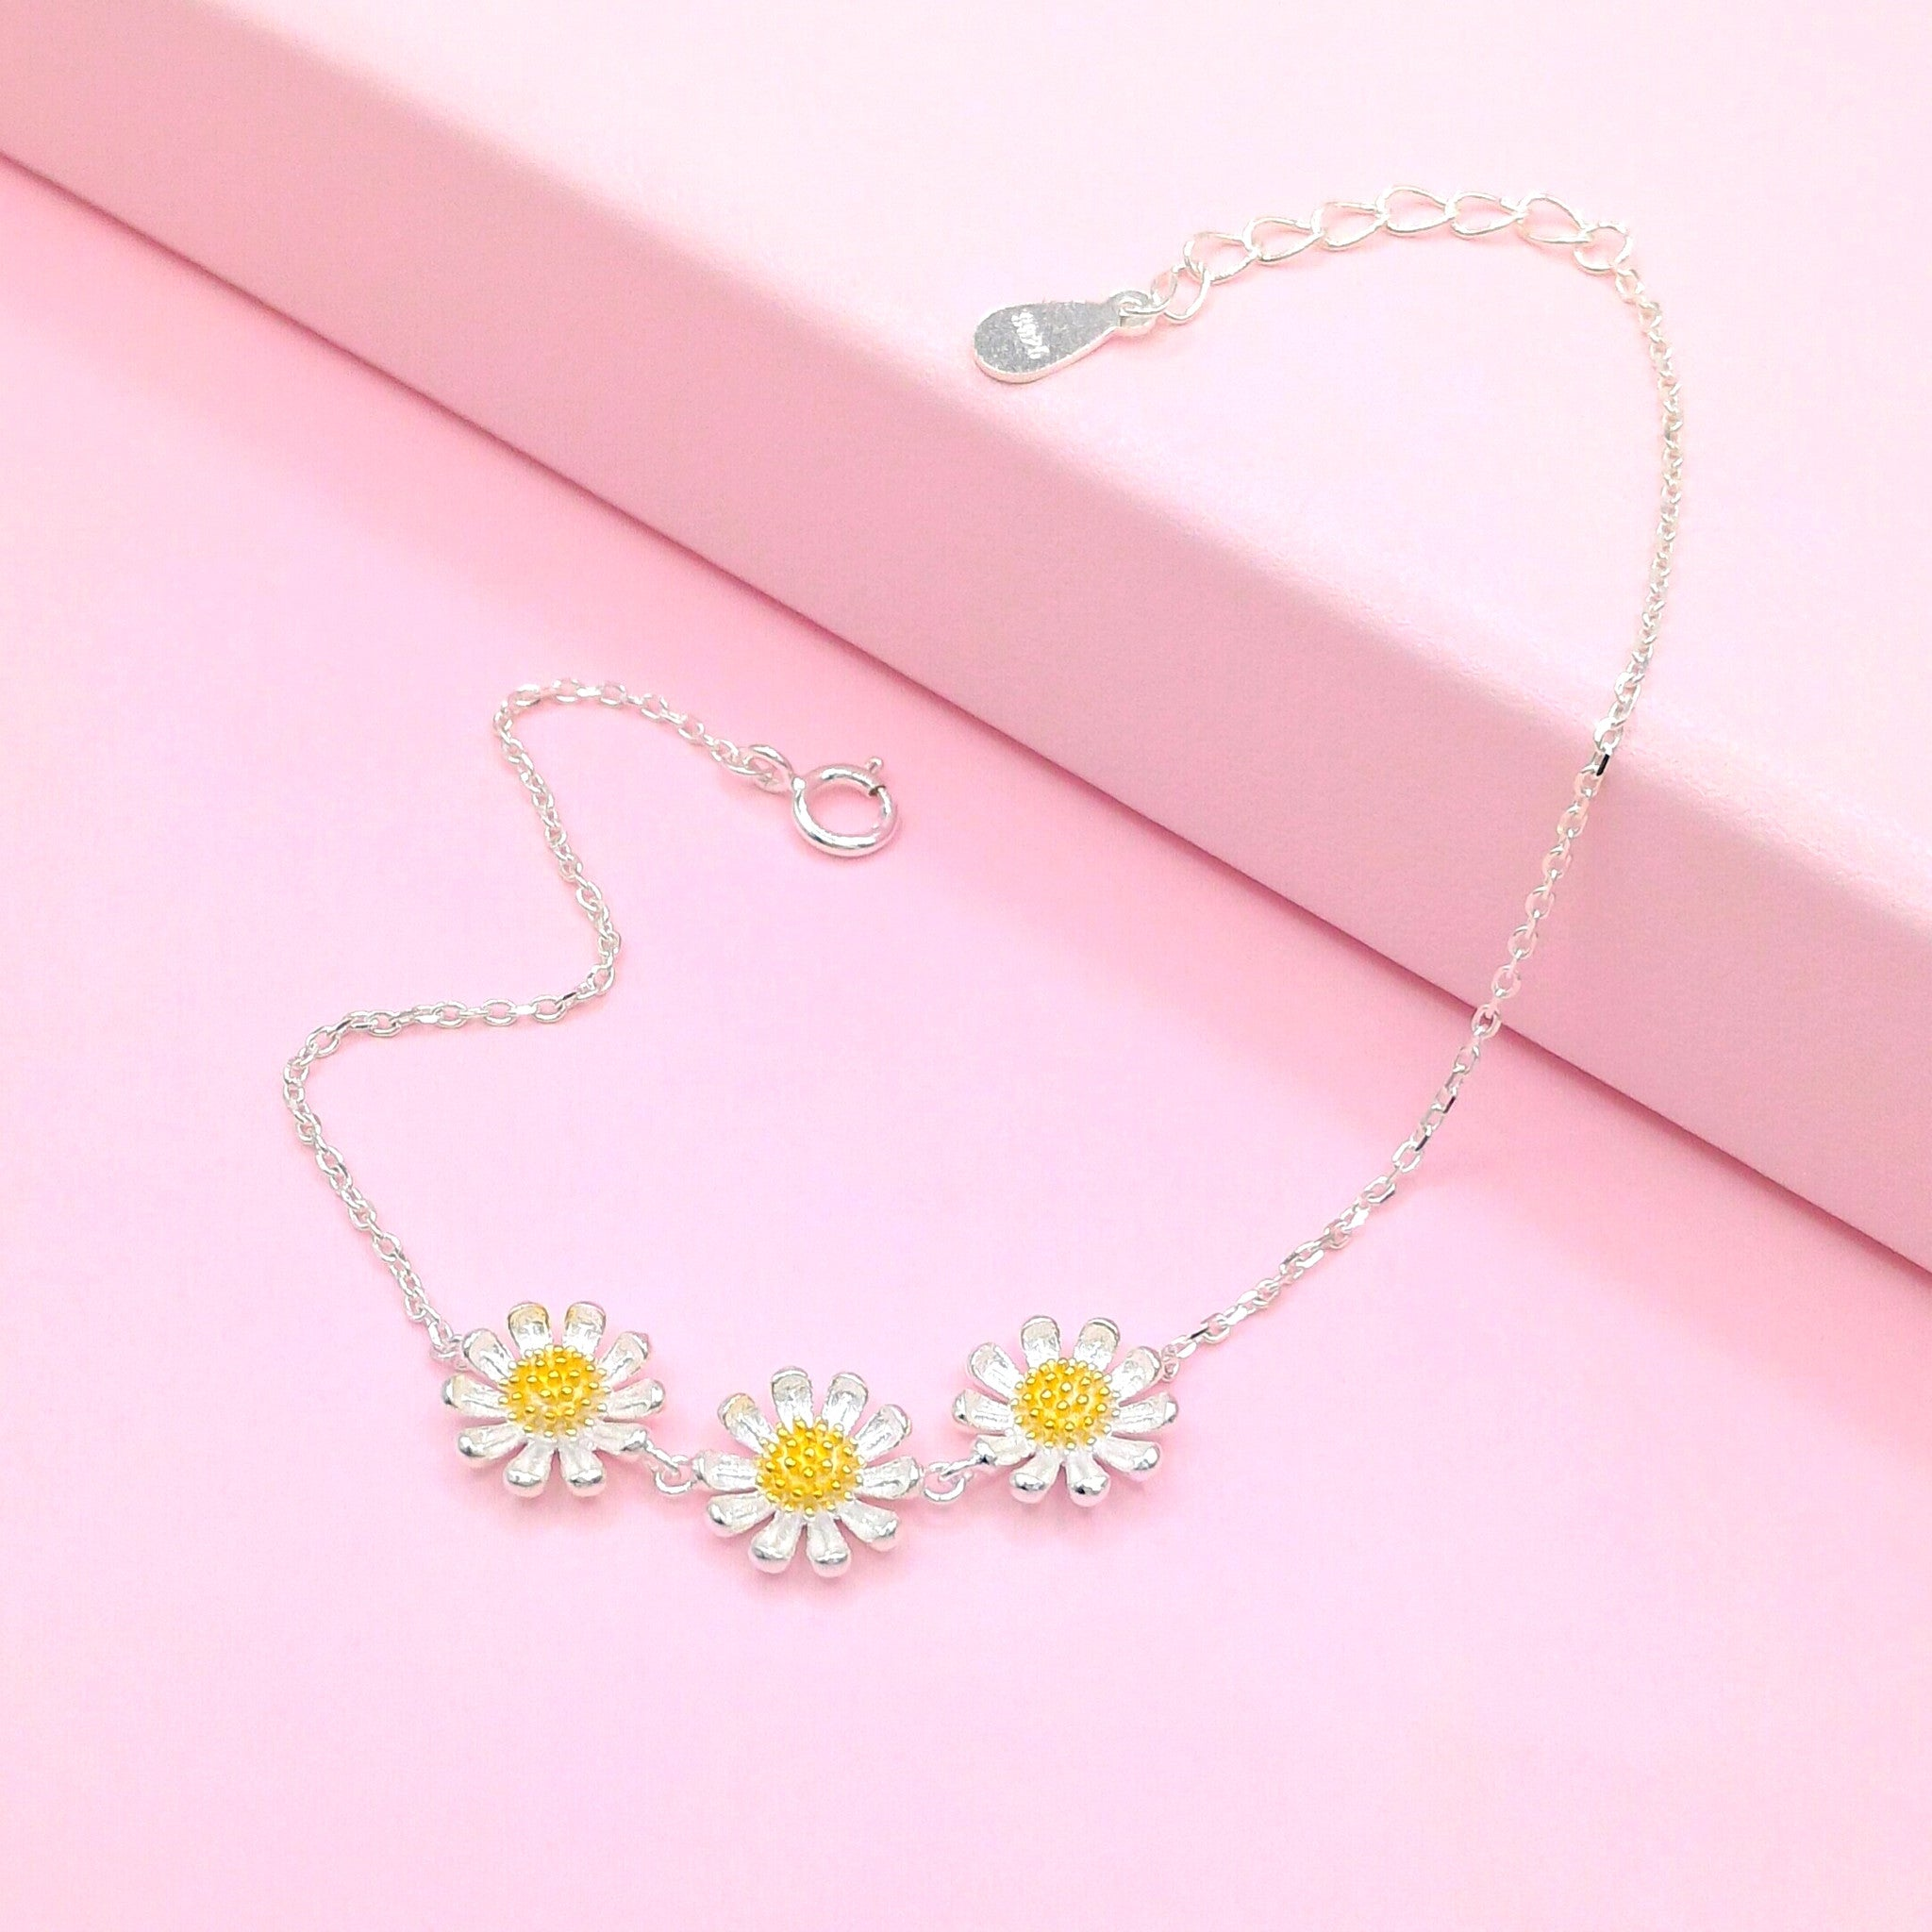 necklaces jewellery delightful joma necklace daisy